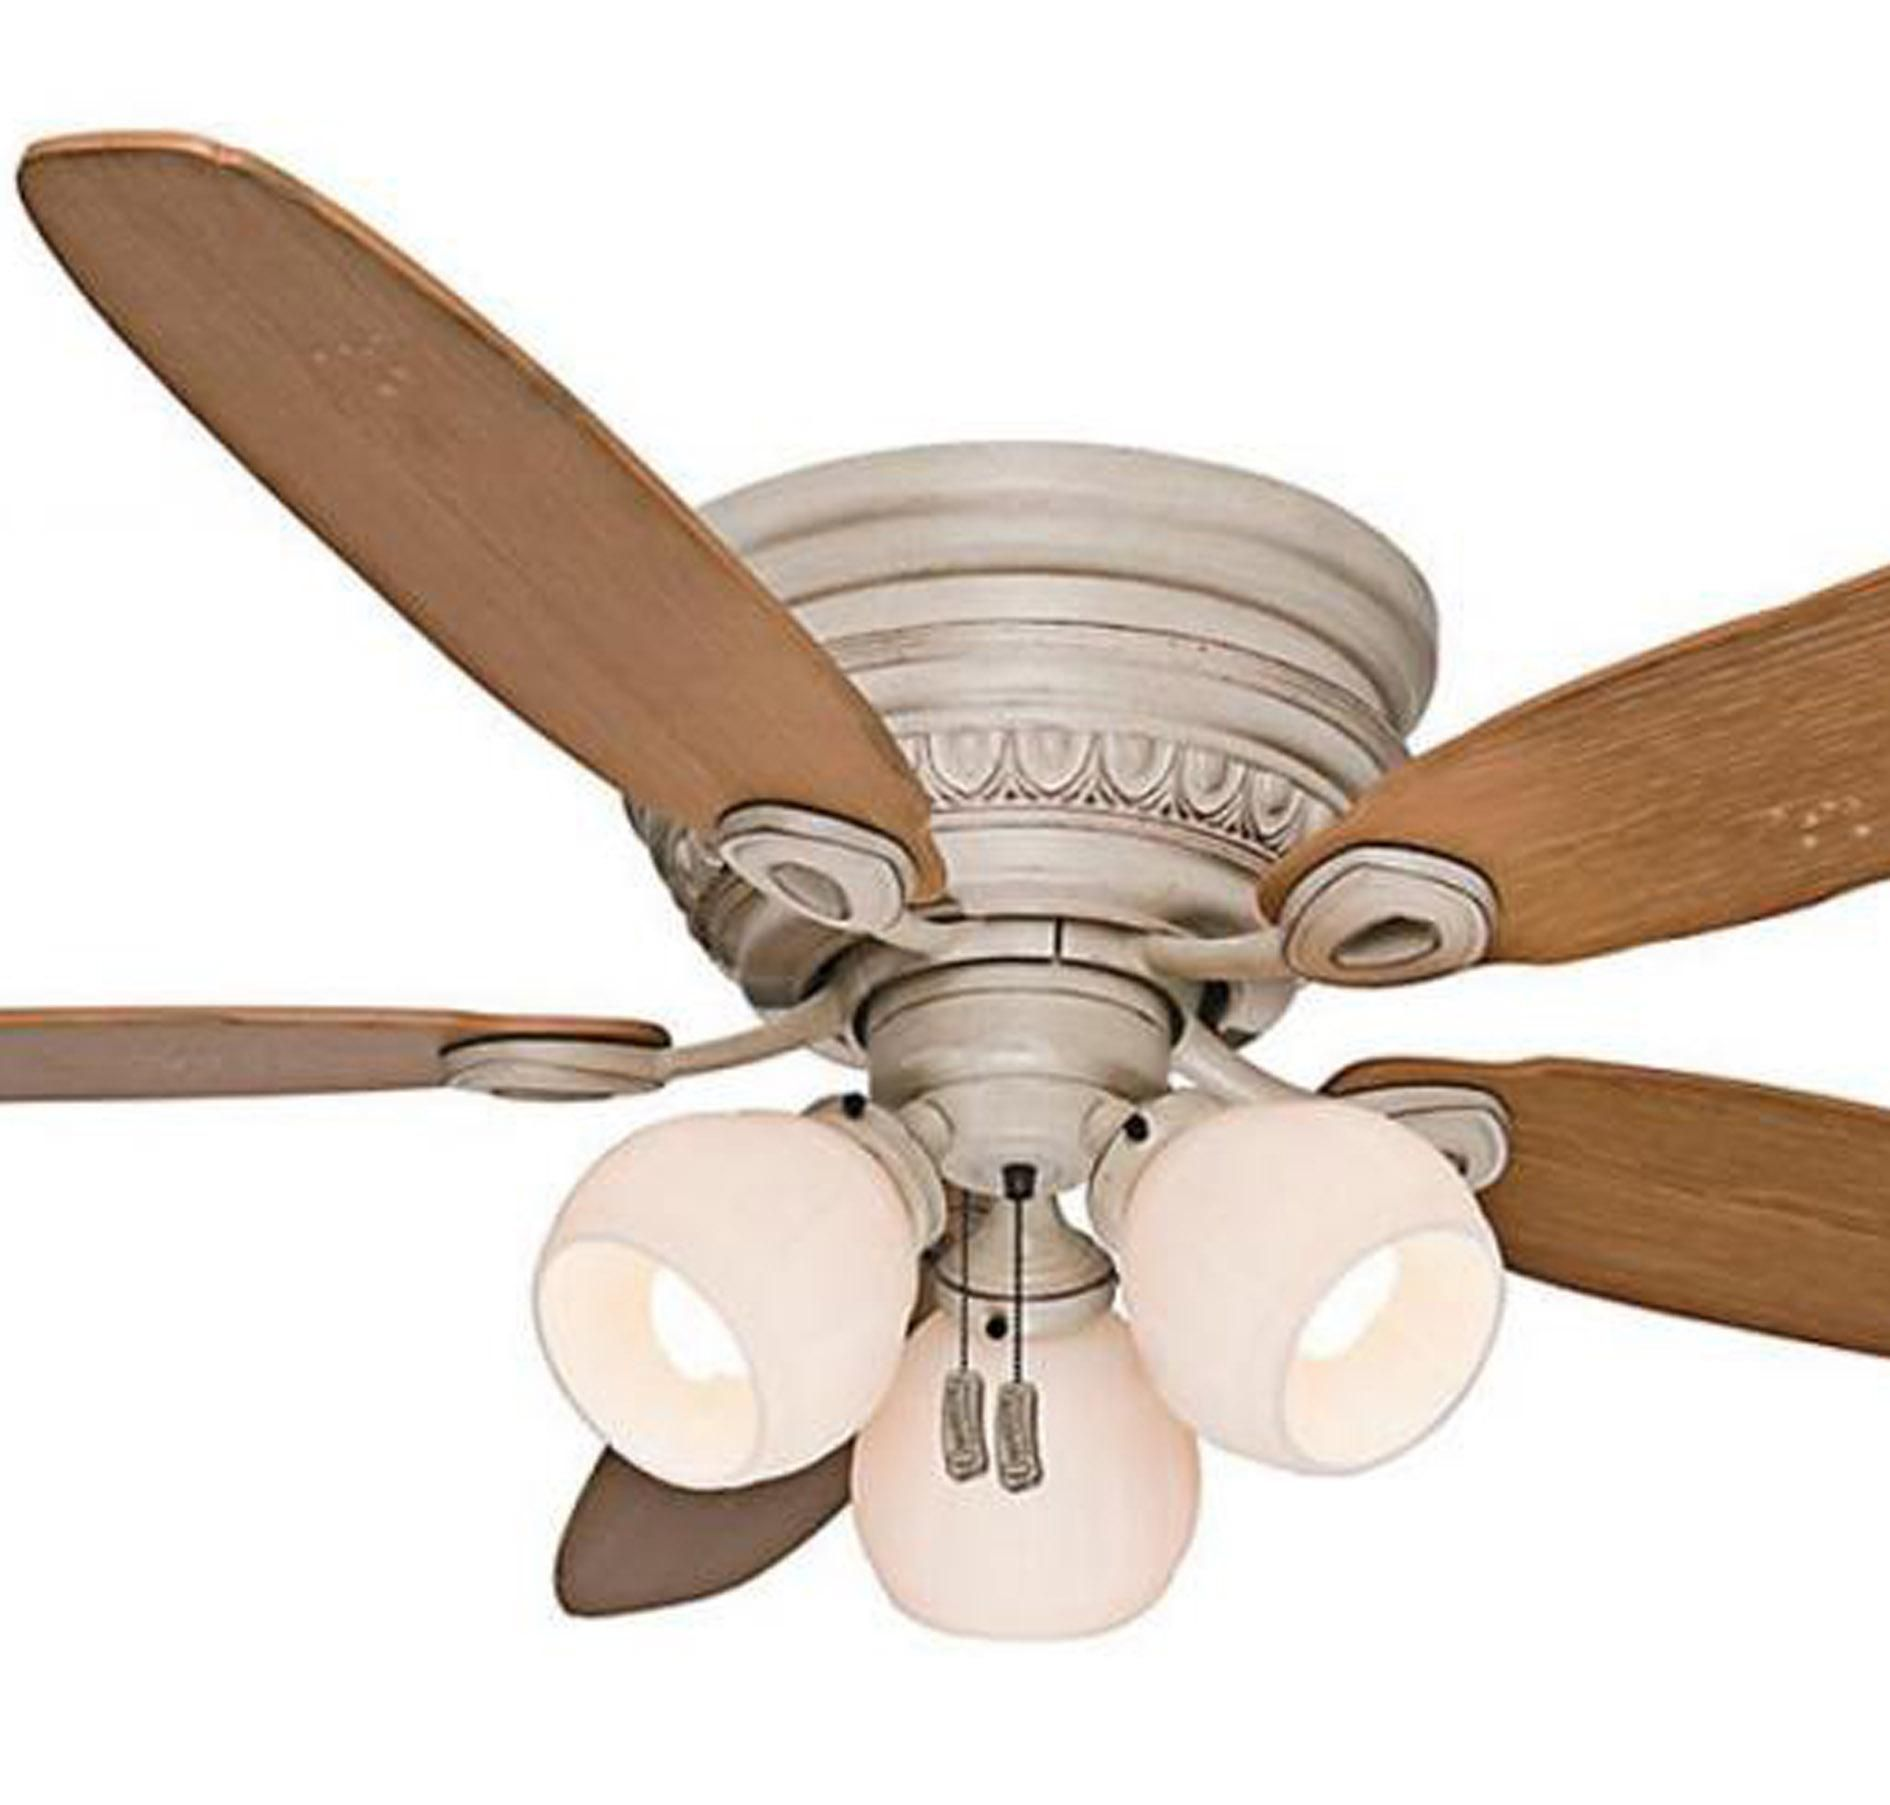 fans need rtaimage discussiondetail install home body my hampton help with remote ceilingfan ceilings feoid bay fan for a the depot to eid howto refid ceiling jpg